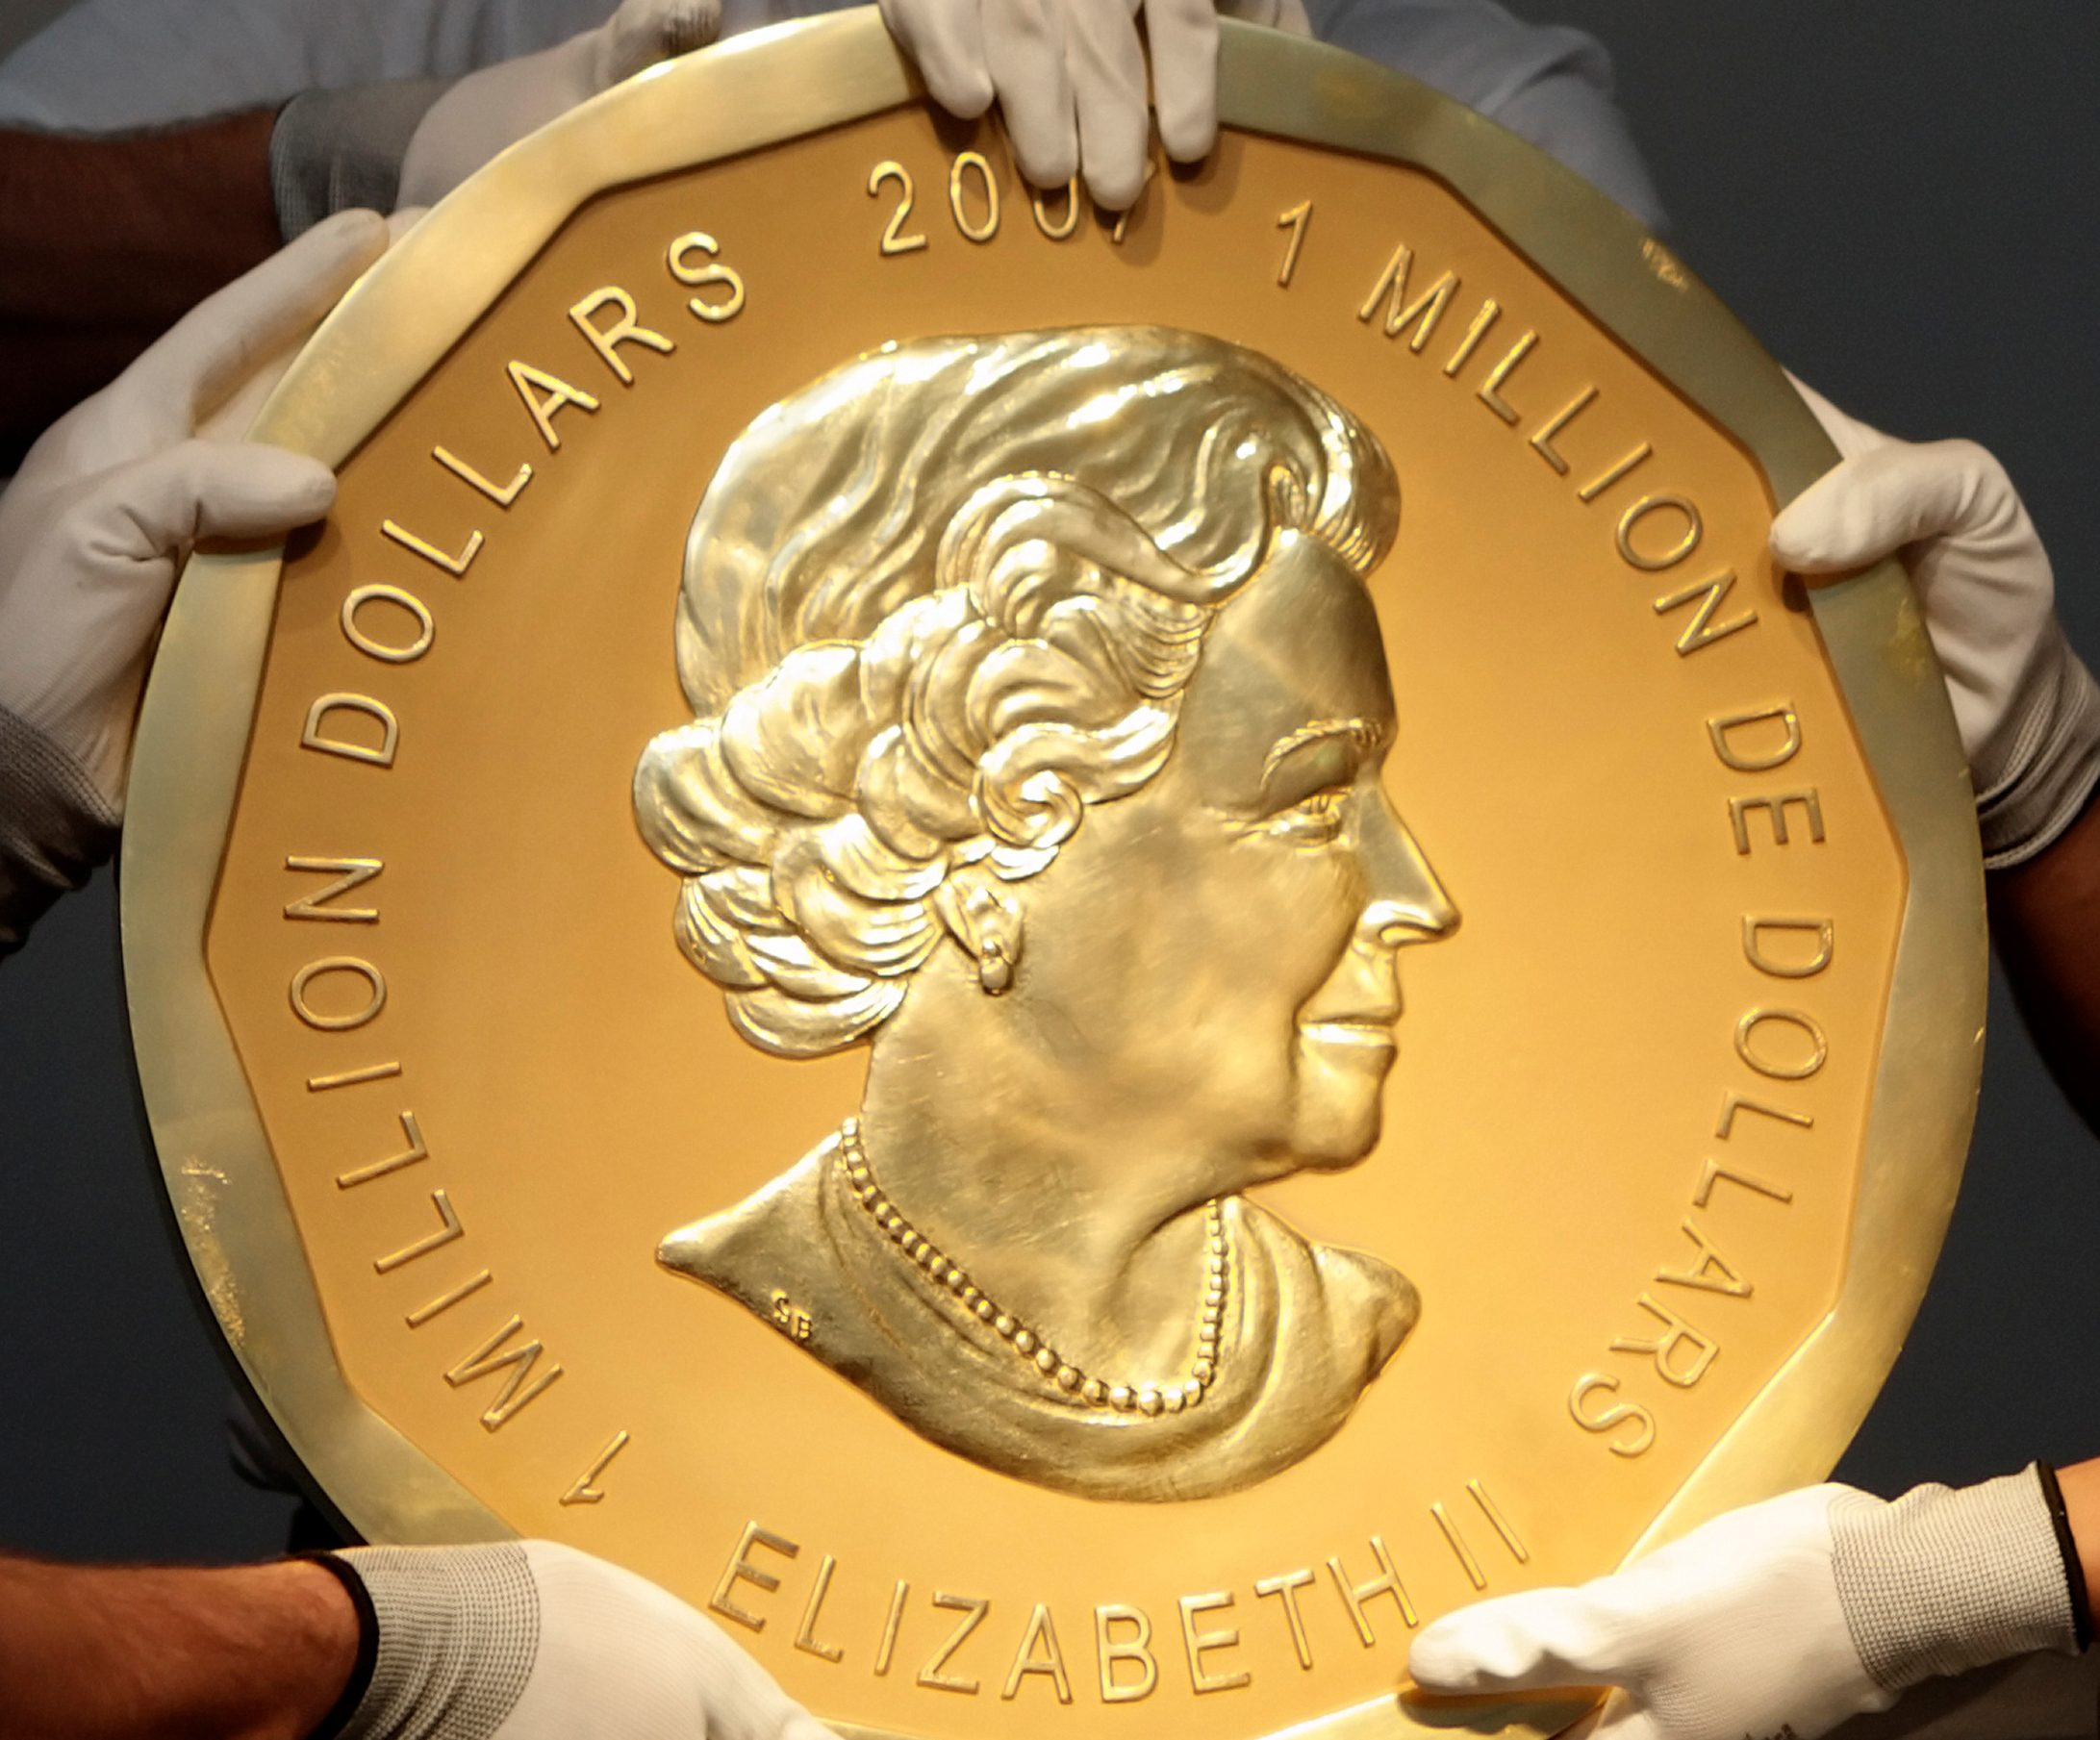 Replica of the 100kg Big Maple Leaf Canadian coin stolen from Berlin's Bode Museum on Monday